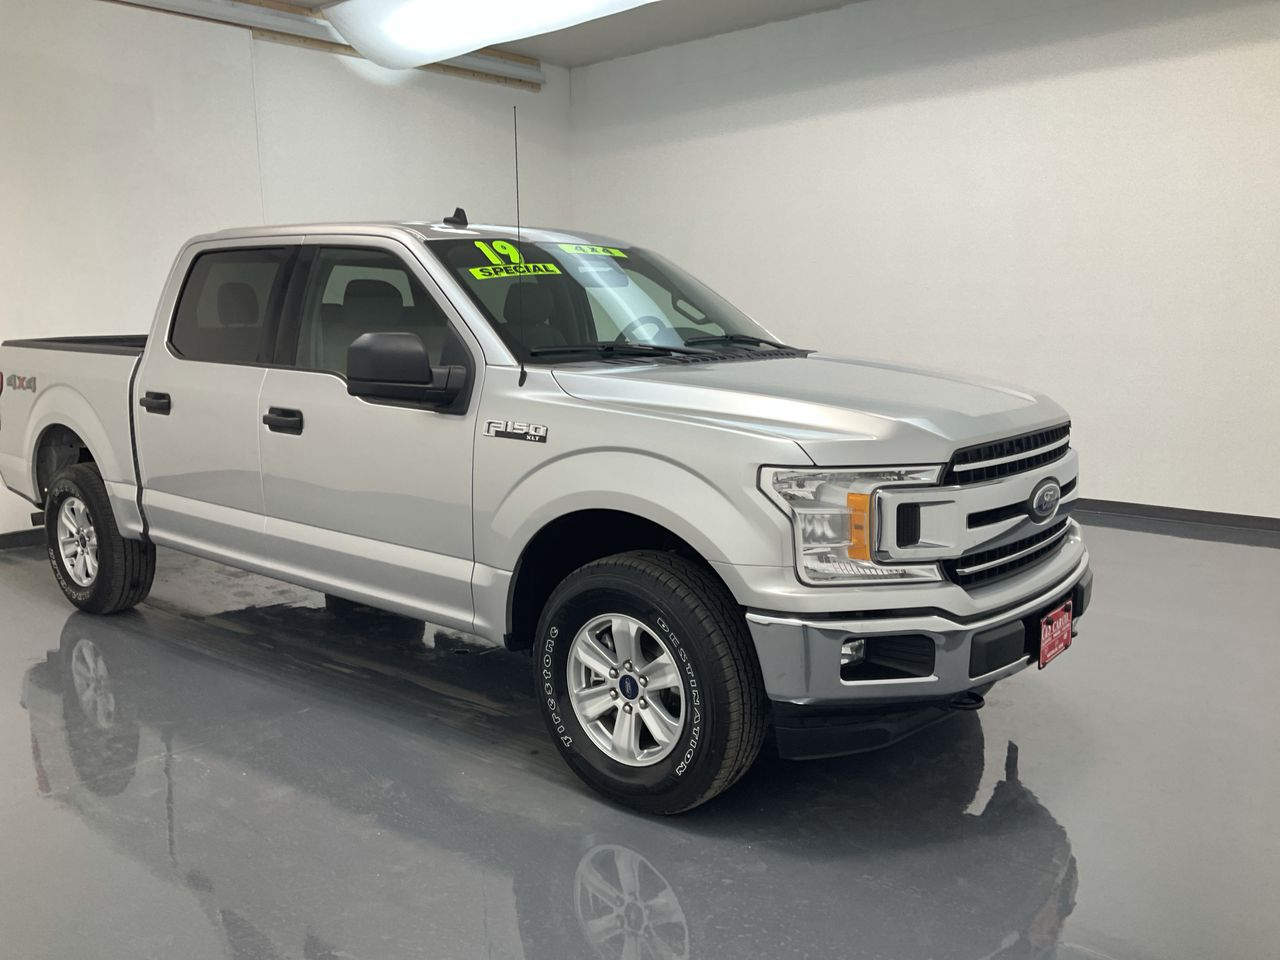 2019 Ford F-150 Supercrew 4WD 145  - 16515  - C & S Car Company